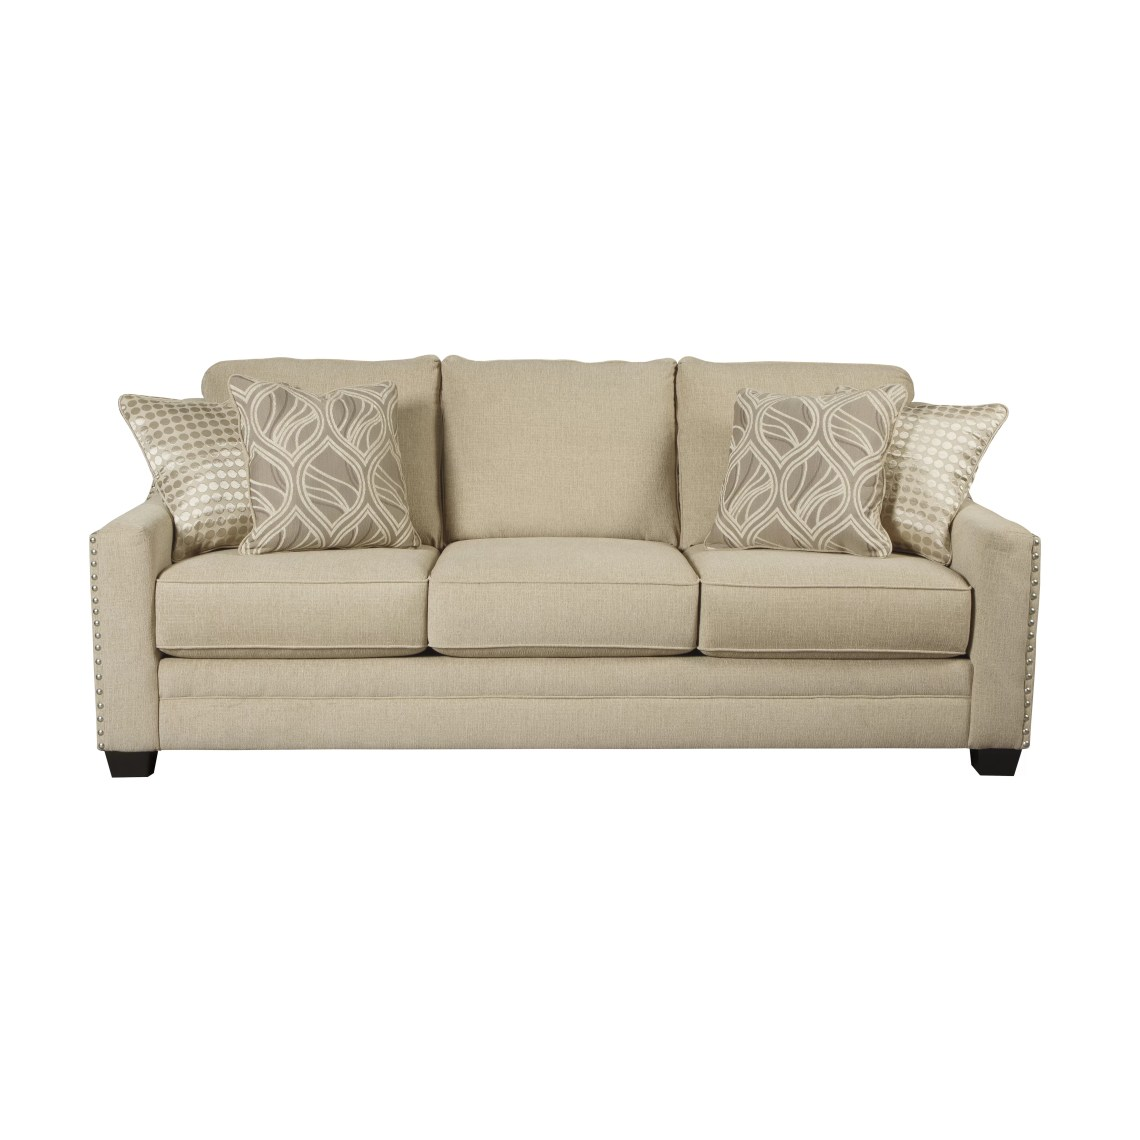 Image Result For Sofa Next Day Delivery